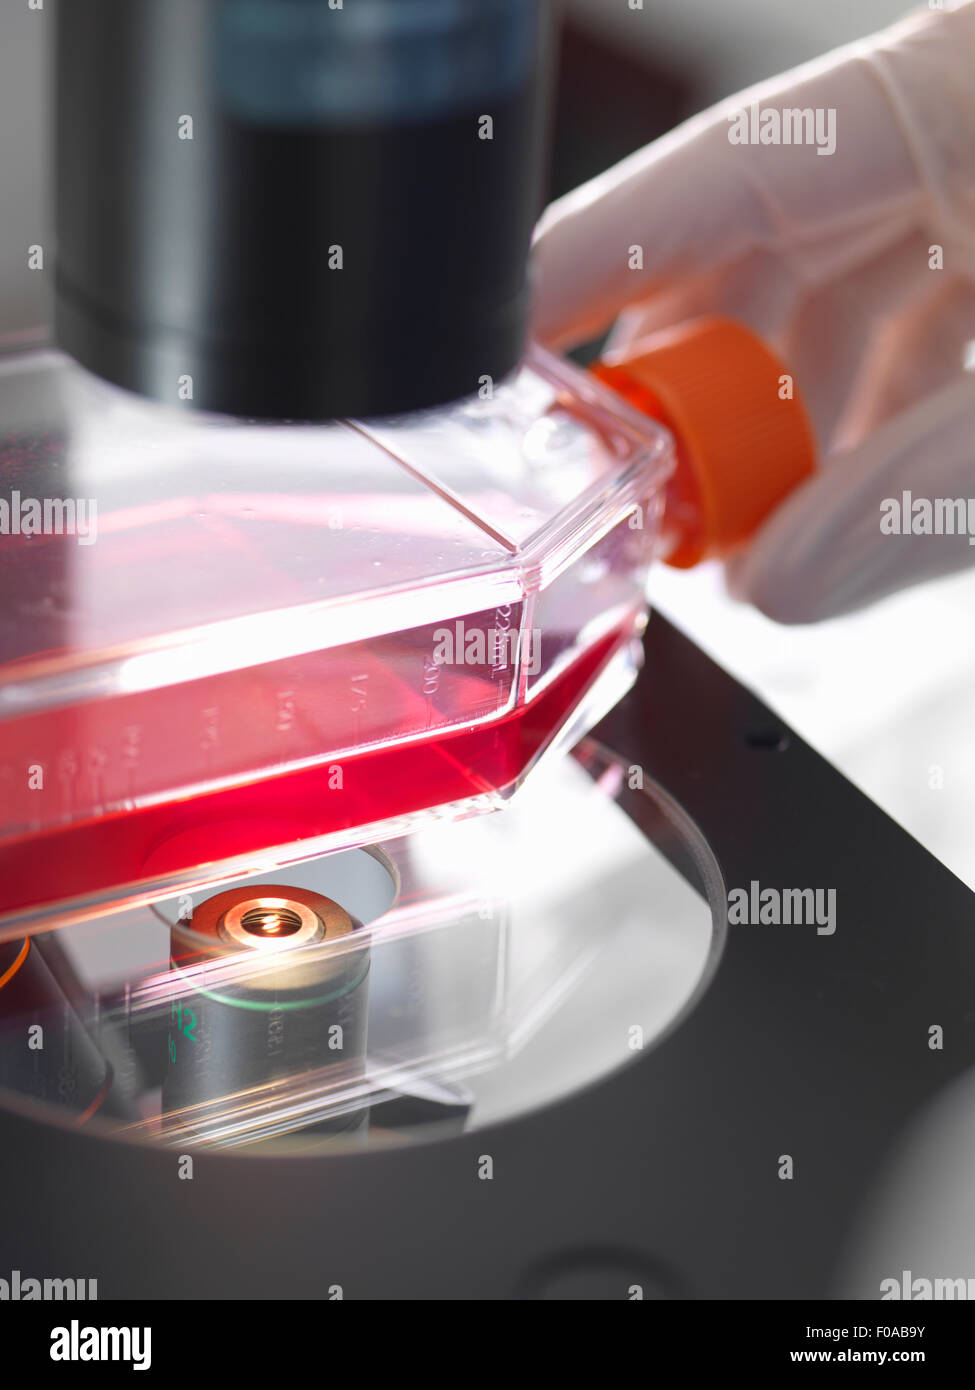 Flask containing cultures sitting on platform of inverted microscope in lab - Stock Image